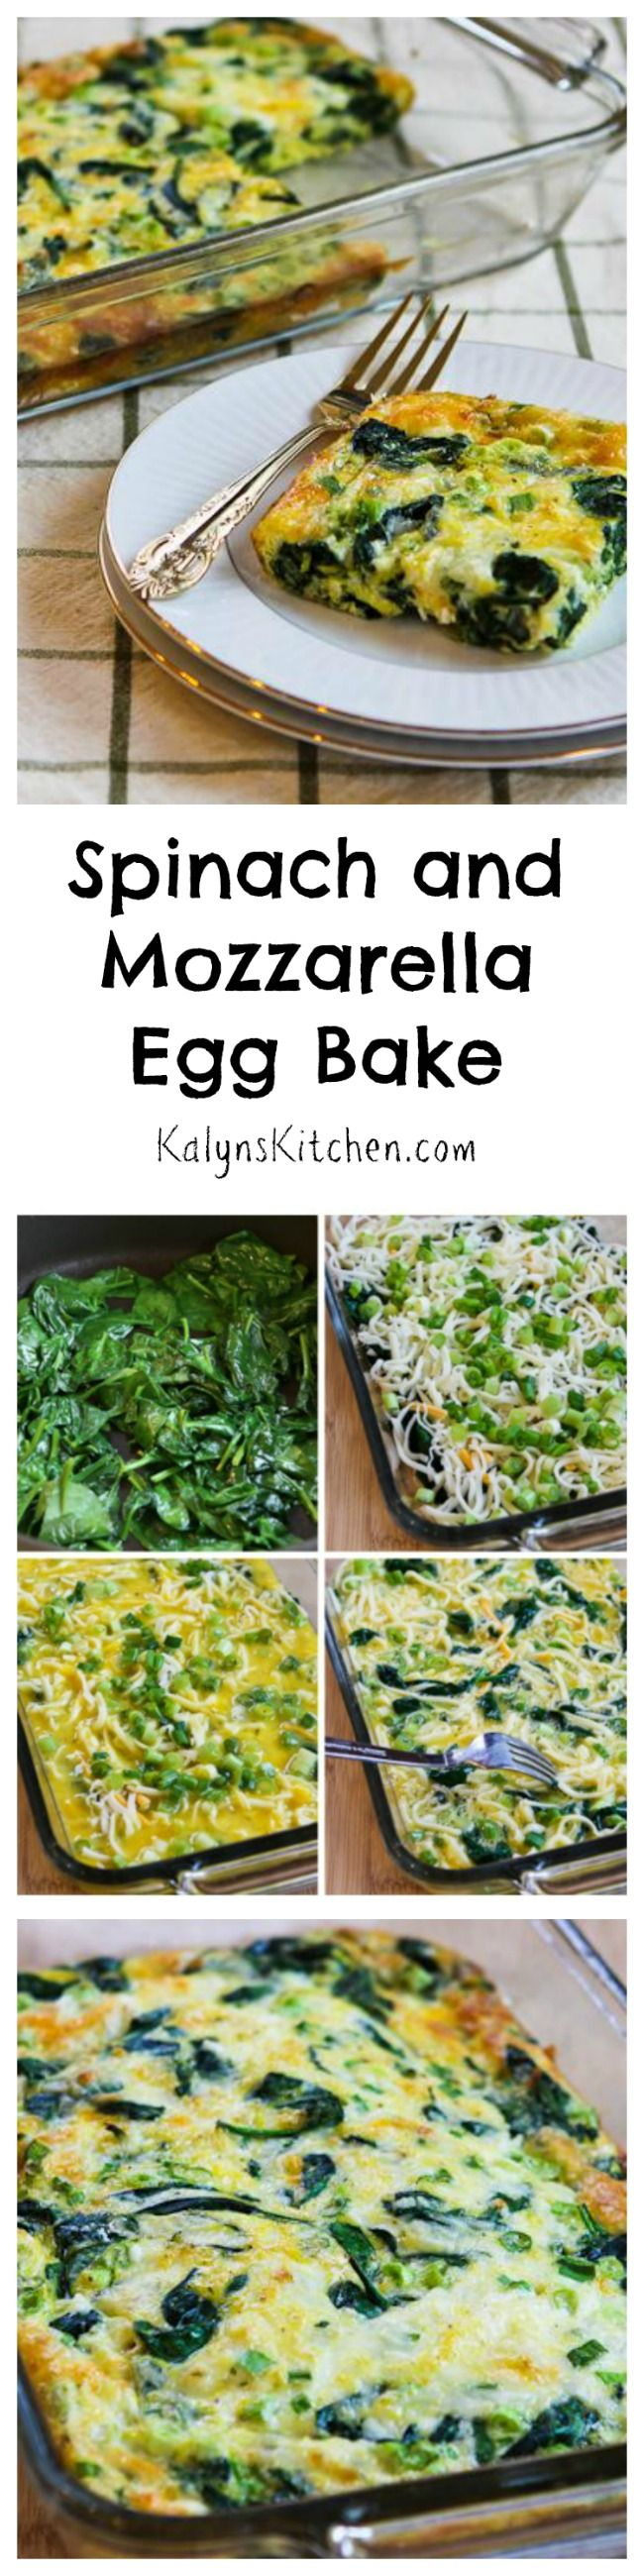 Click on the to know more! This Spinach and Mozzarella Egg Bake is a delicious way to start out your day with a healthy dose of greens! This recipe would be perfect for a summer brunch, or any time you want a breakfast that's healthy and delicious. #LowCarb #GlutenFree #Vegetarian